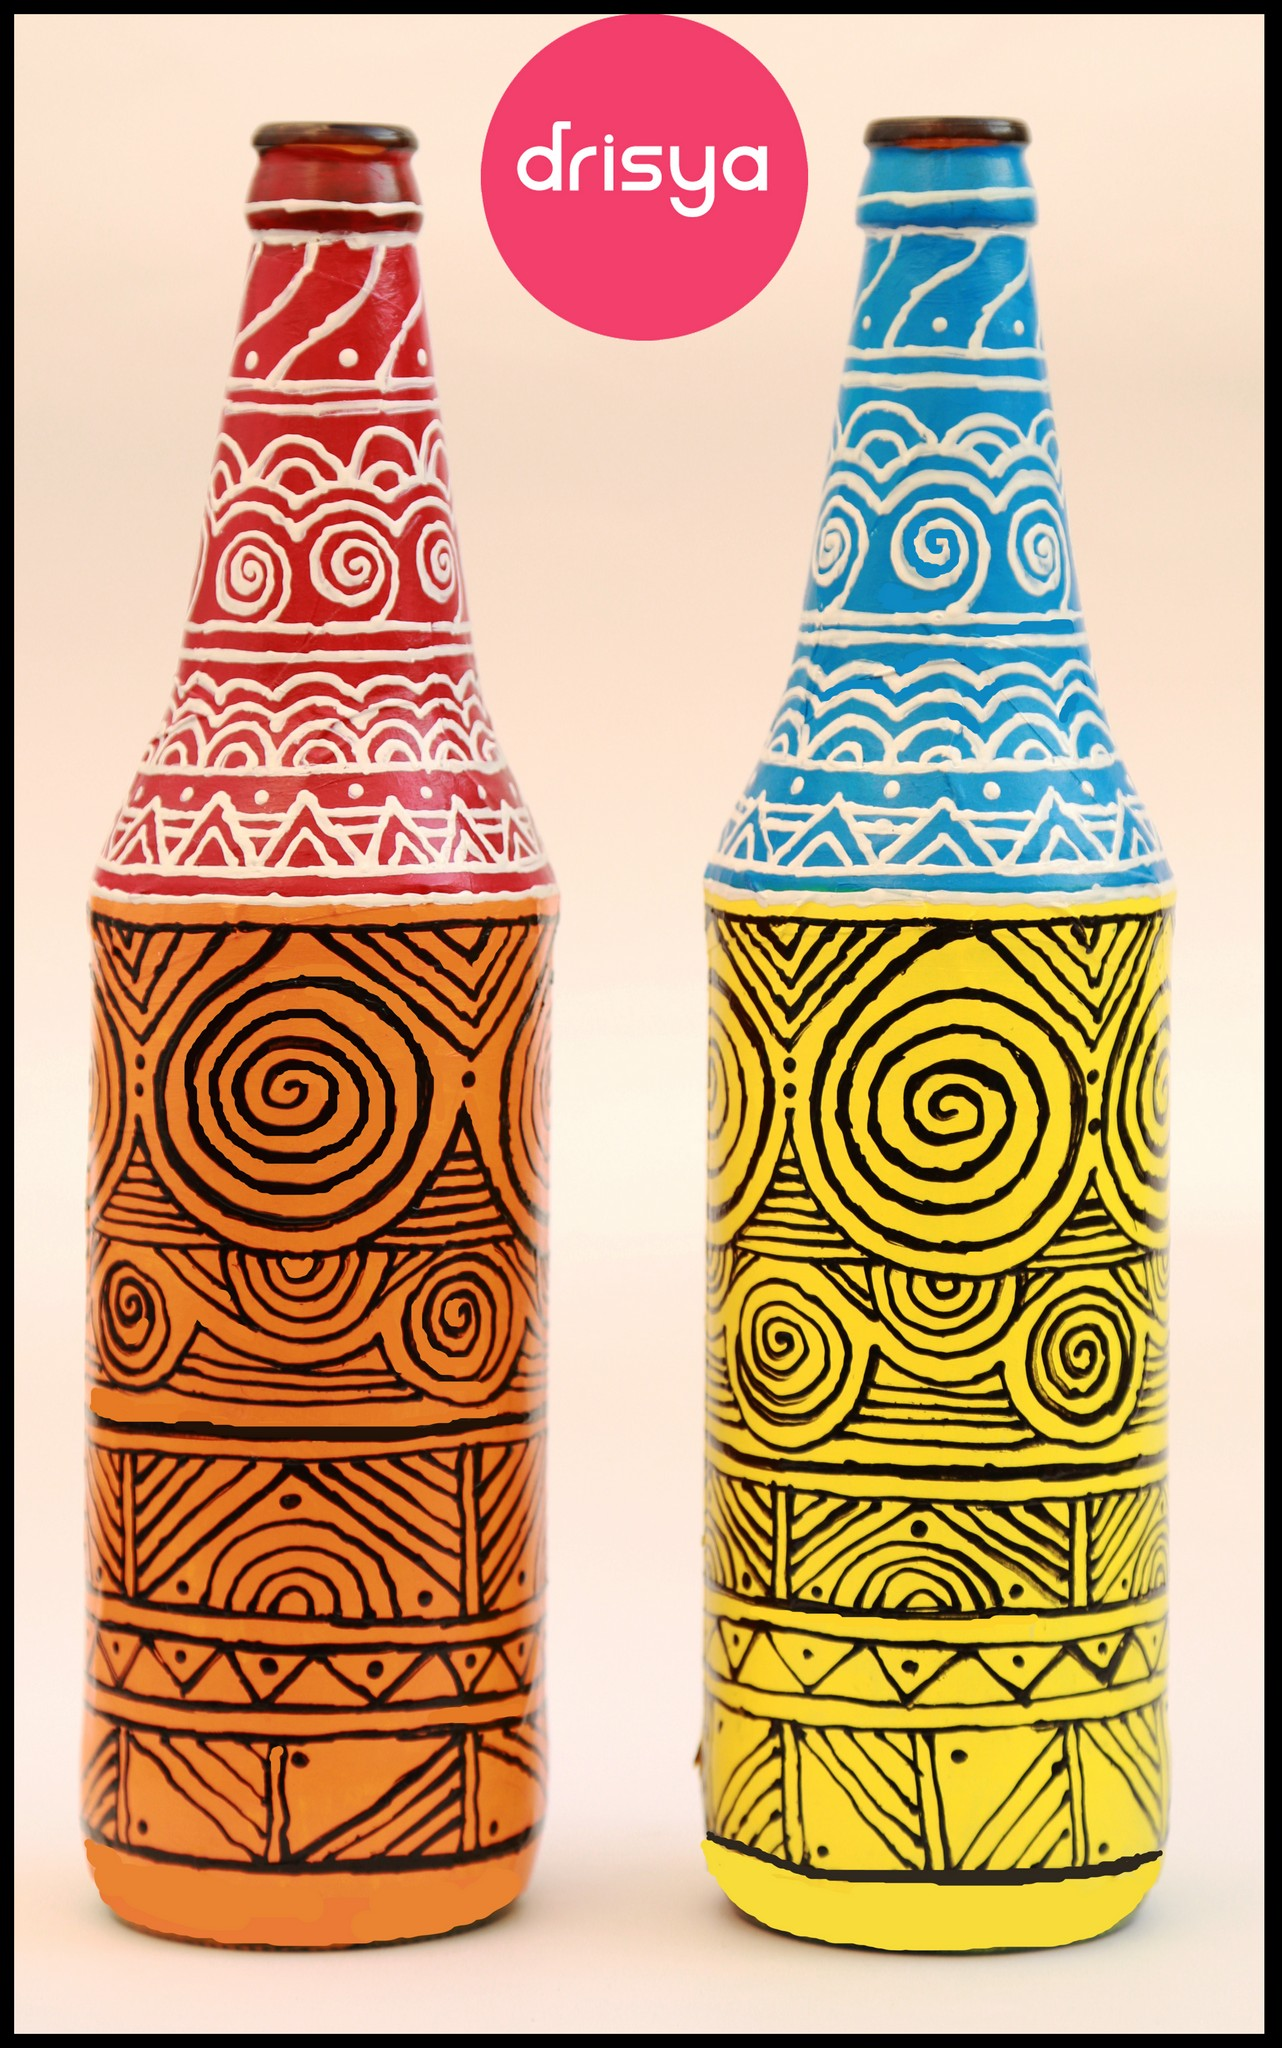 Hand-painted designer bottles from Drisya